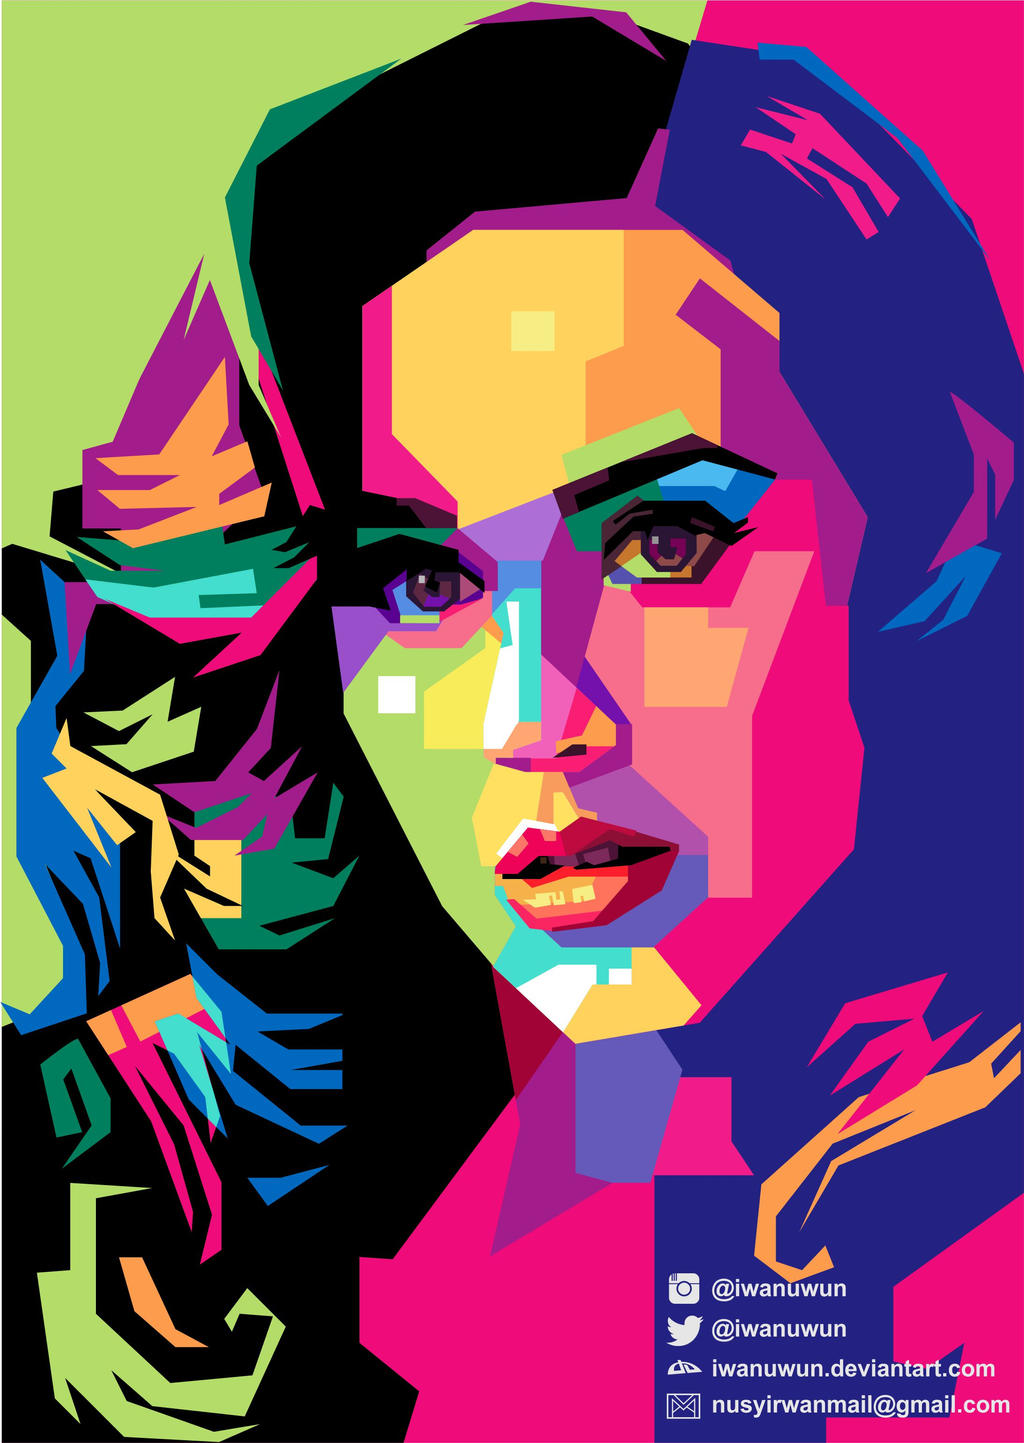 Katy Perry on WPAP by iwanuwun on DeviantArt